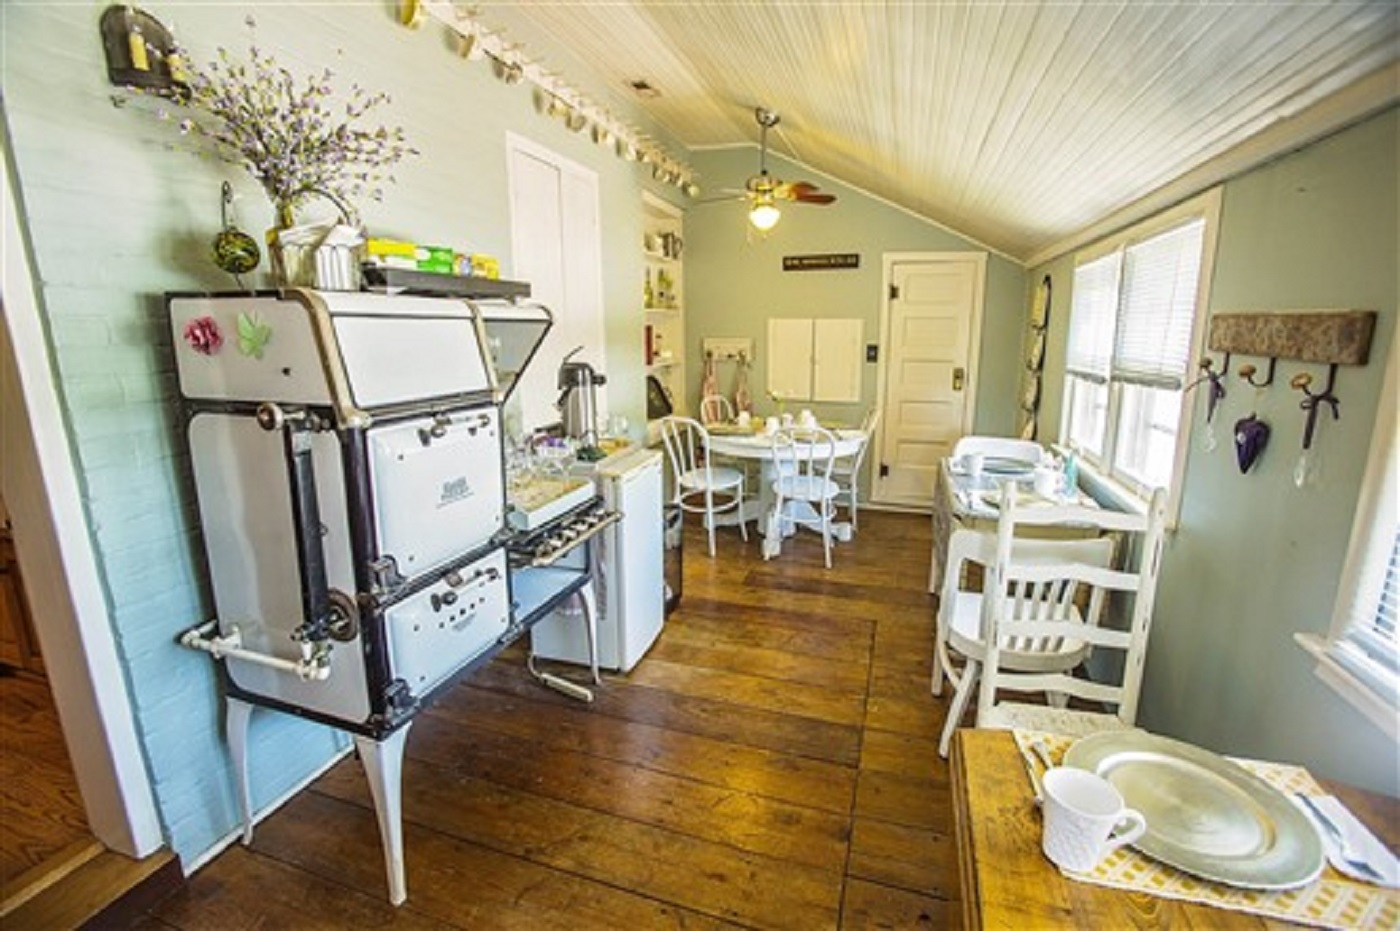 The House - Rated as one of Weston's Premier Bed and Breakfast Facilities your stay includes:Private Bathroom in every room with shower or jacquzzi tubQueen Sized Antique Bed with Lucid Dream Memory Foam MattressShampoo, Conditioner, and Local Body WashOriginal chimneys and gas/electric fire placeIron and ironing board availableComplimentary Wi-Fi